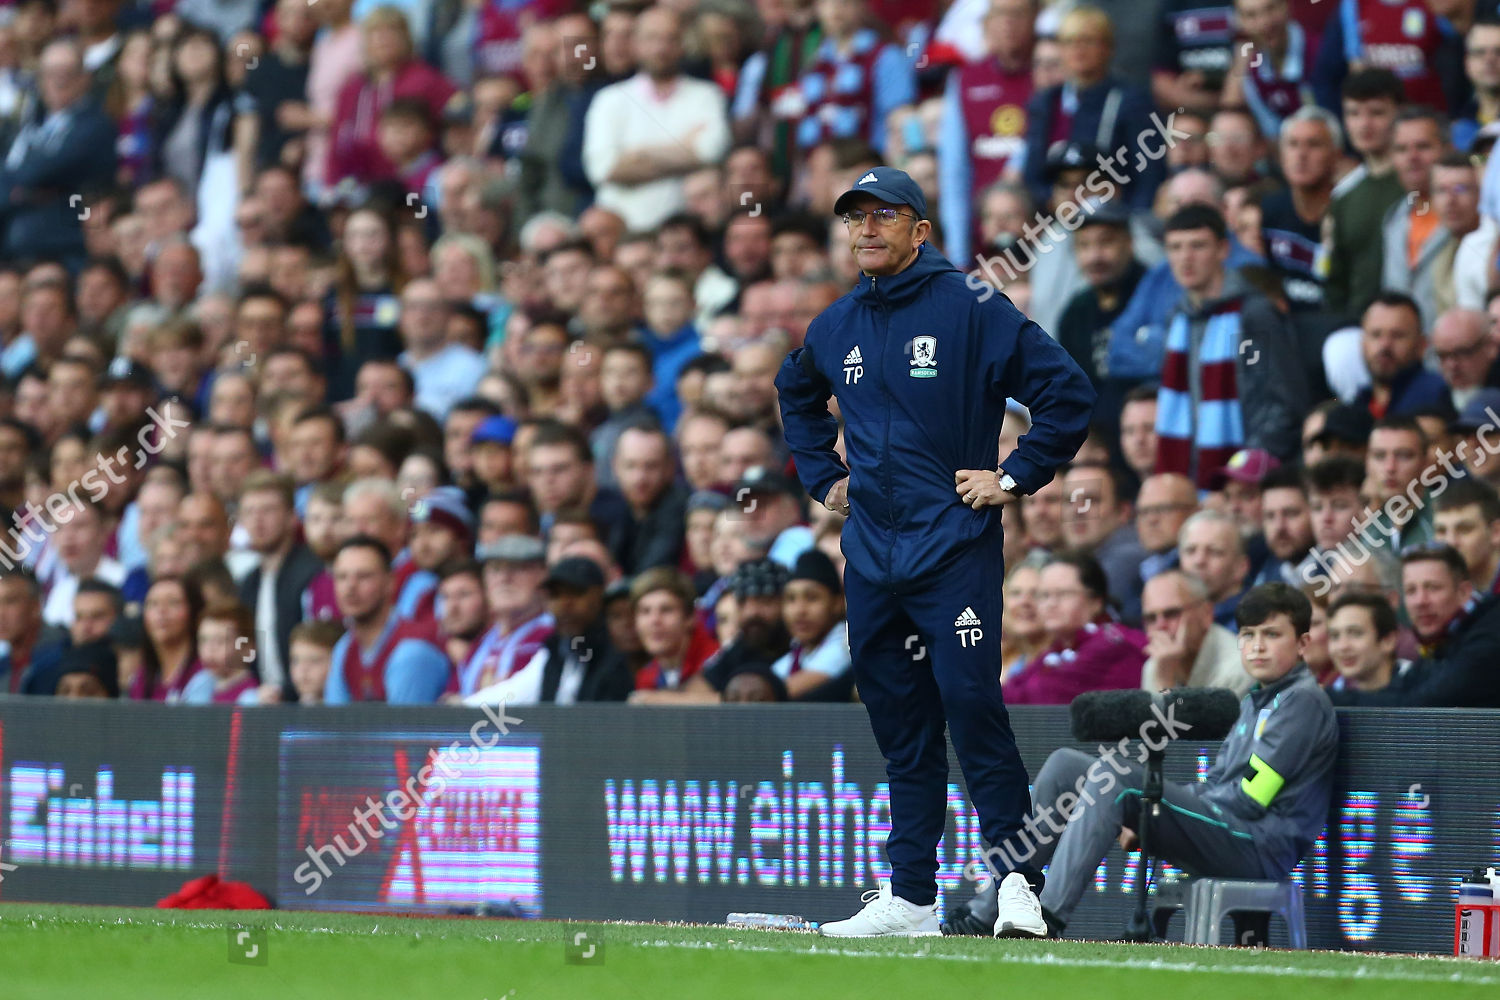 Tony Pulis Middlesbrough manager Editorial Stock Photo